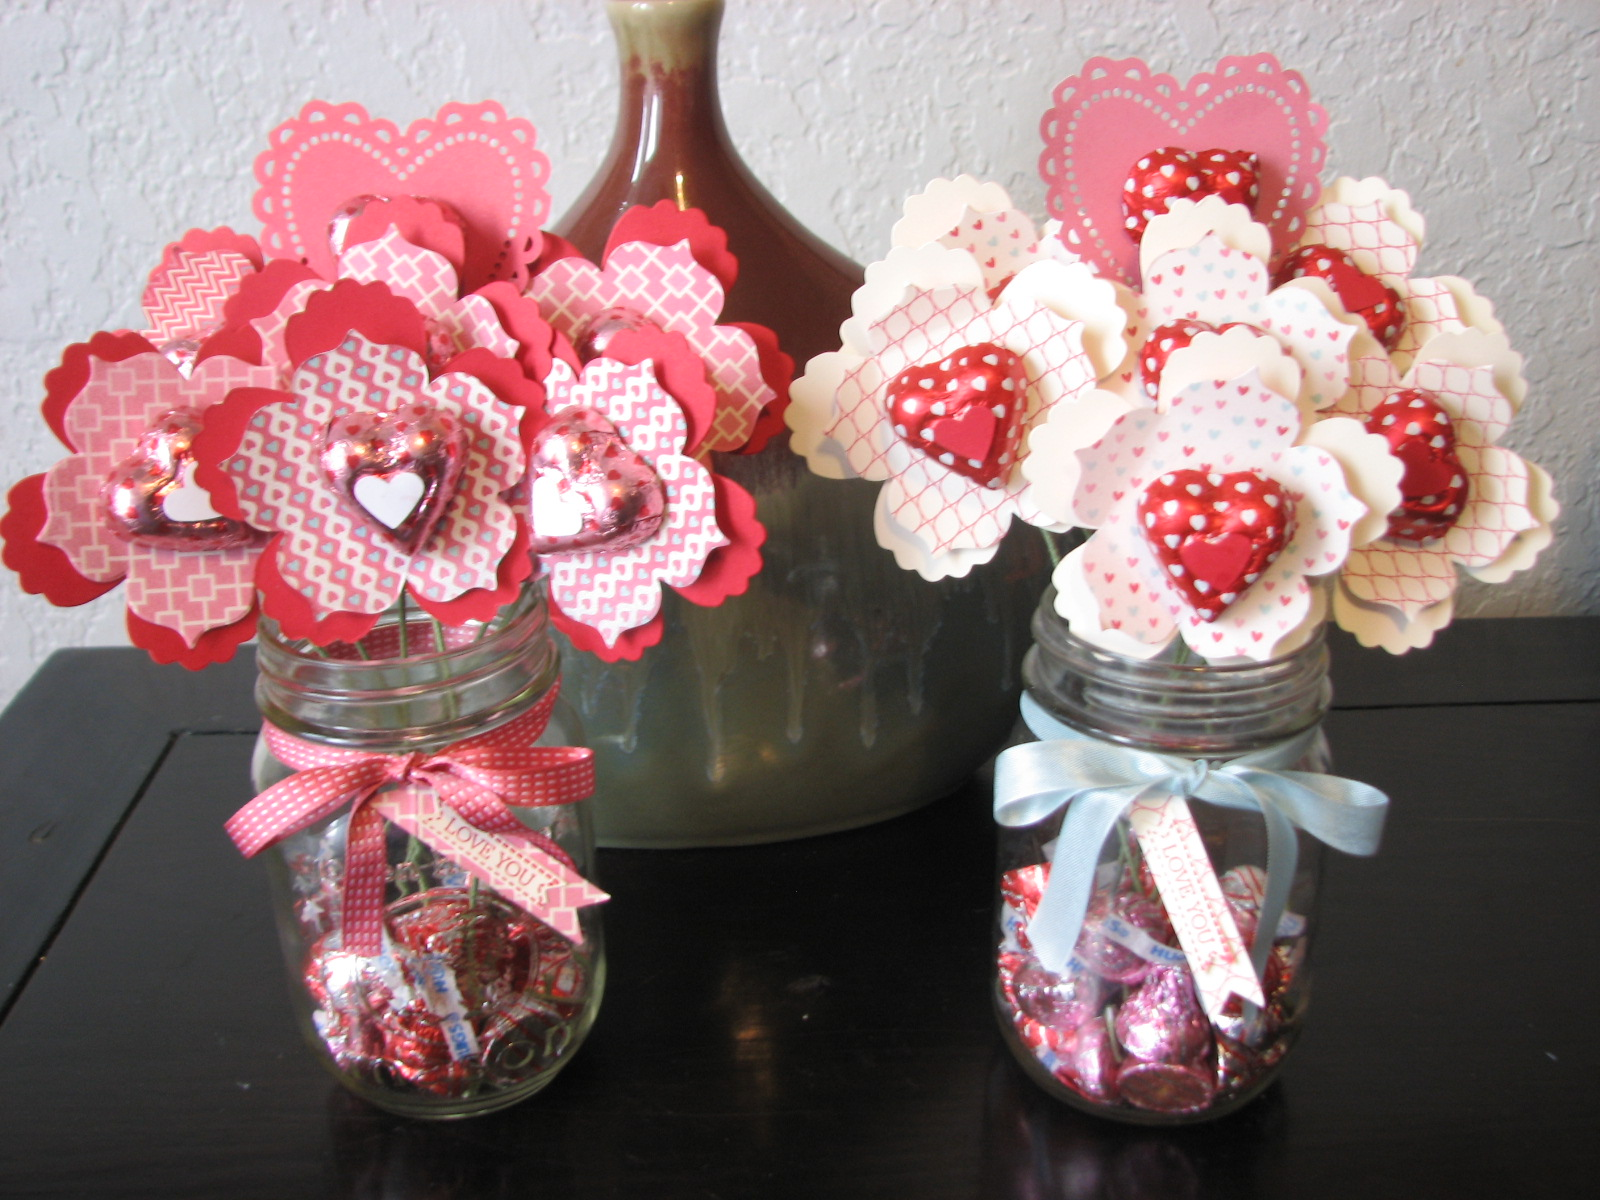 Aphroditenow Hearts On Fire A Bouquet Of Hearts And Candy In A Jar Its  Perfect For